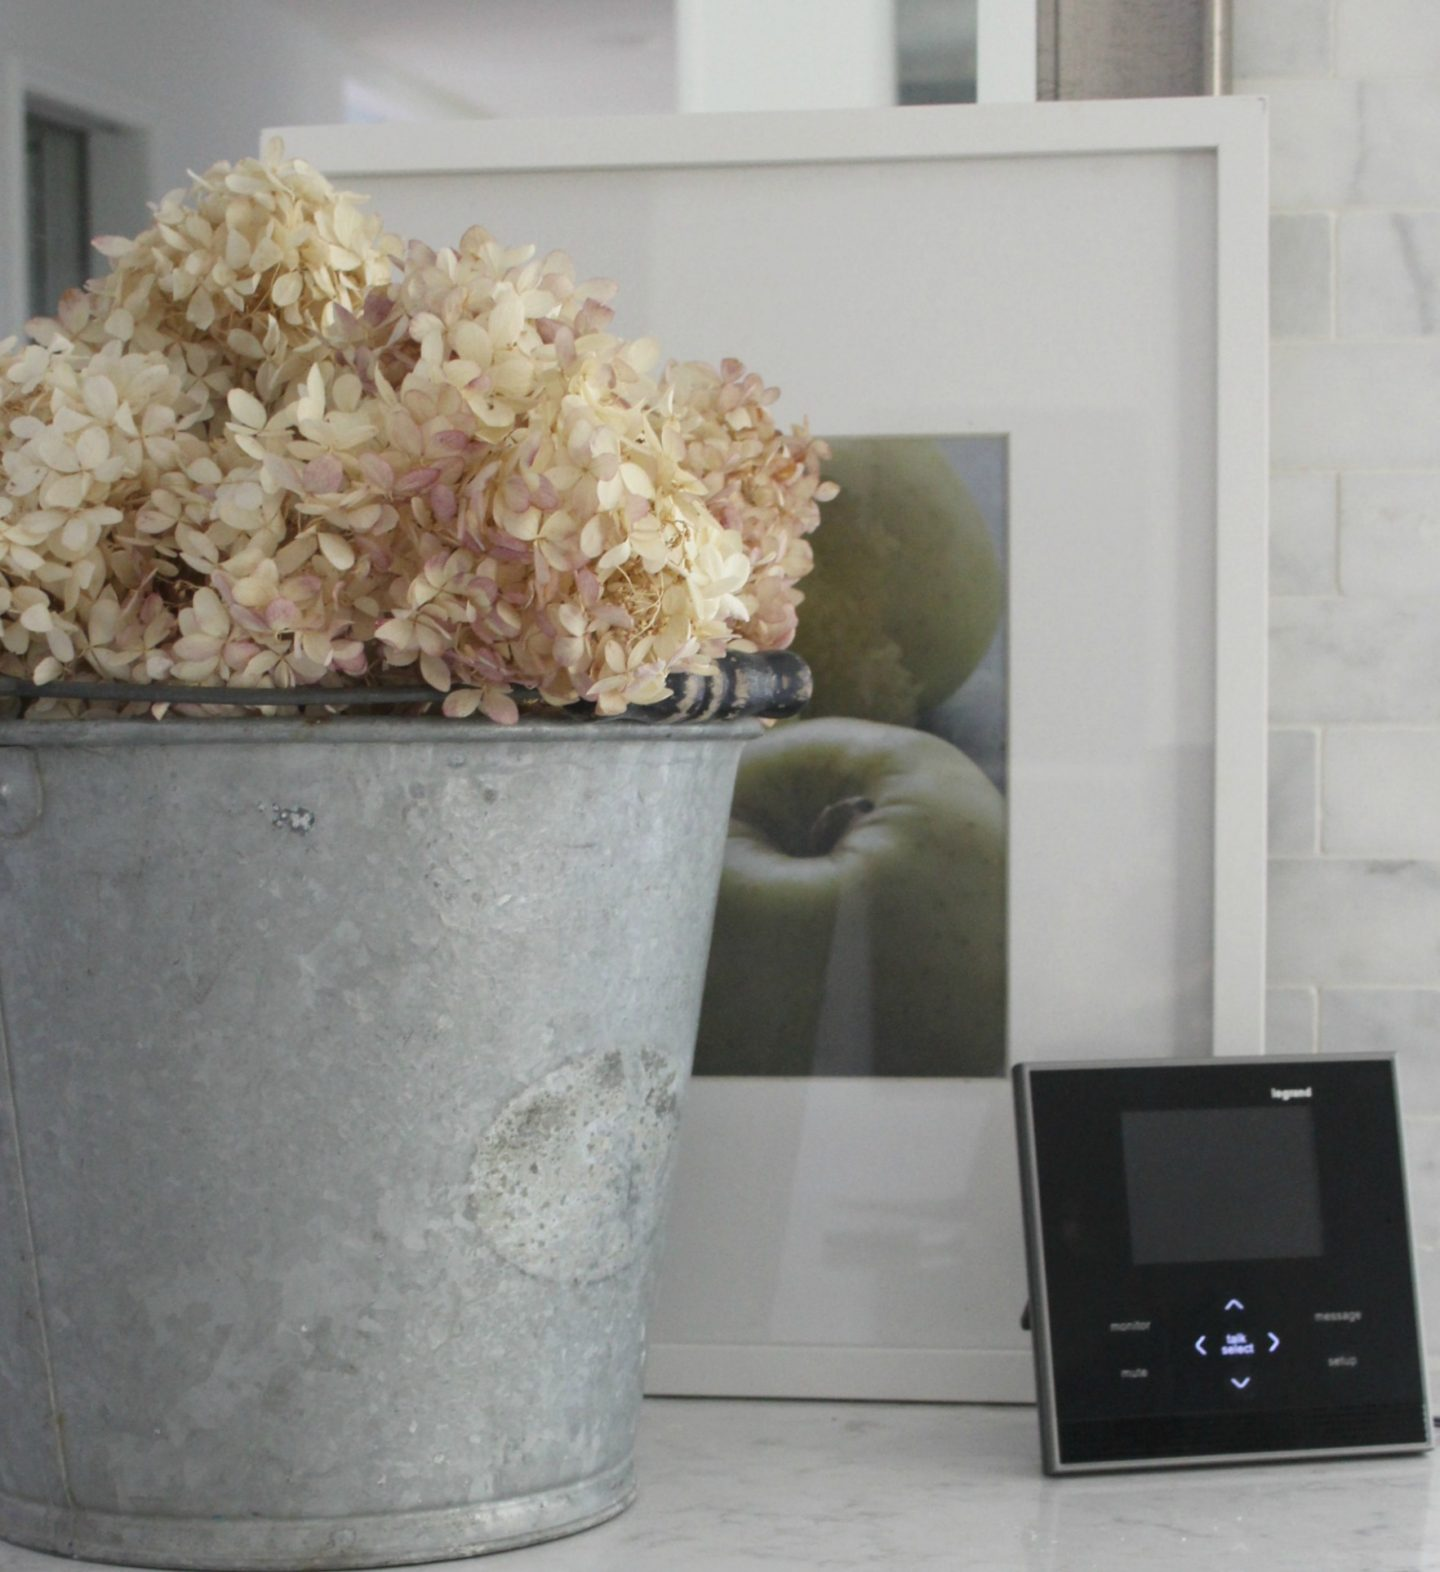 Interior intercom unit from adorne on kitchen counter with bucket of hydrangea - Hello Lovely